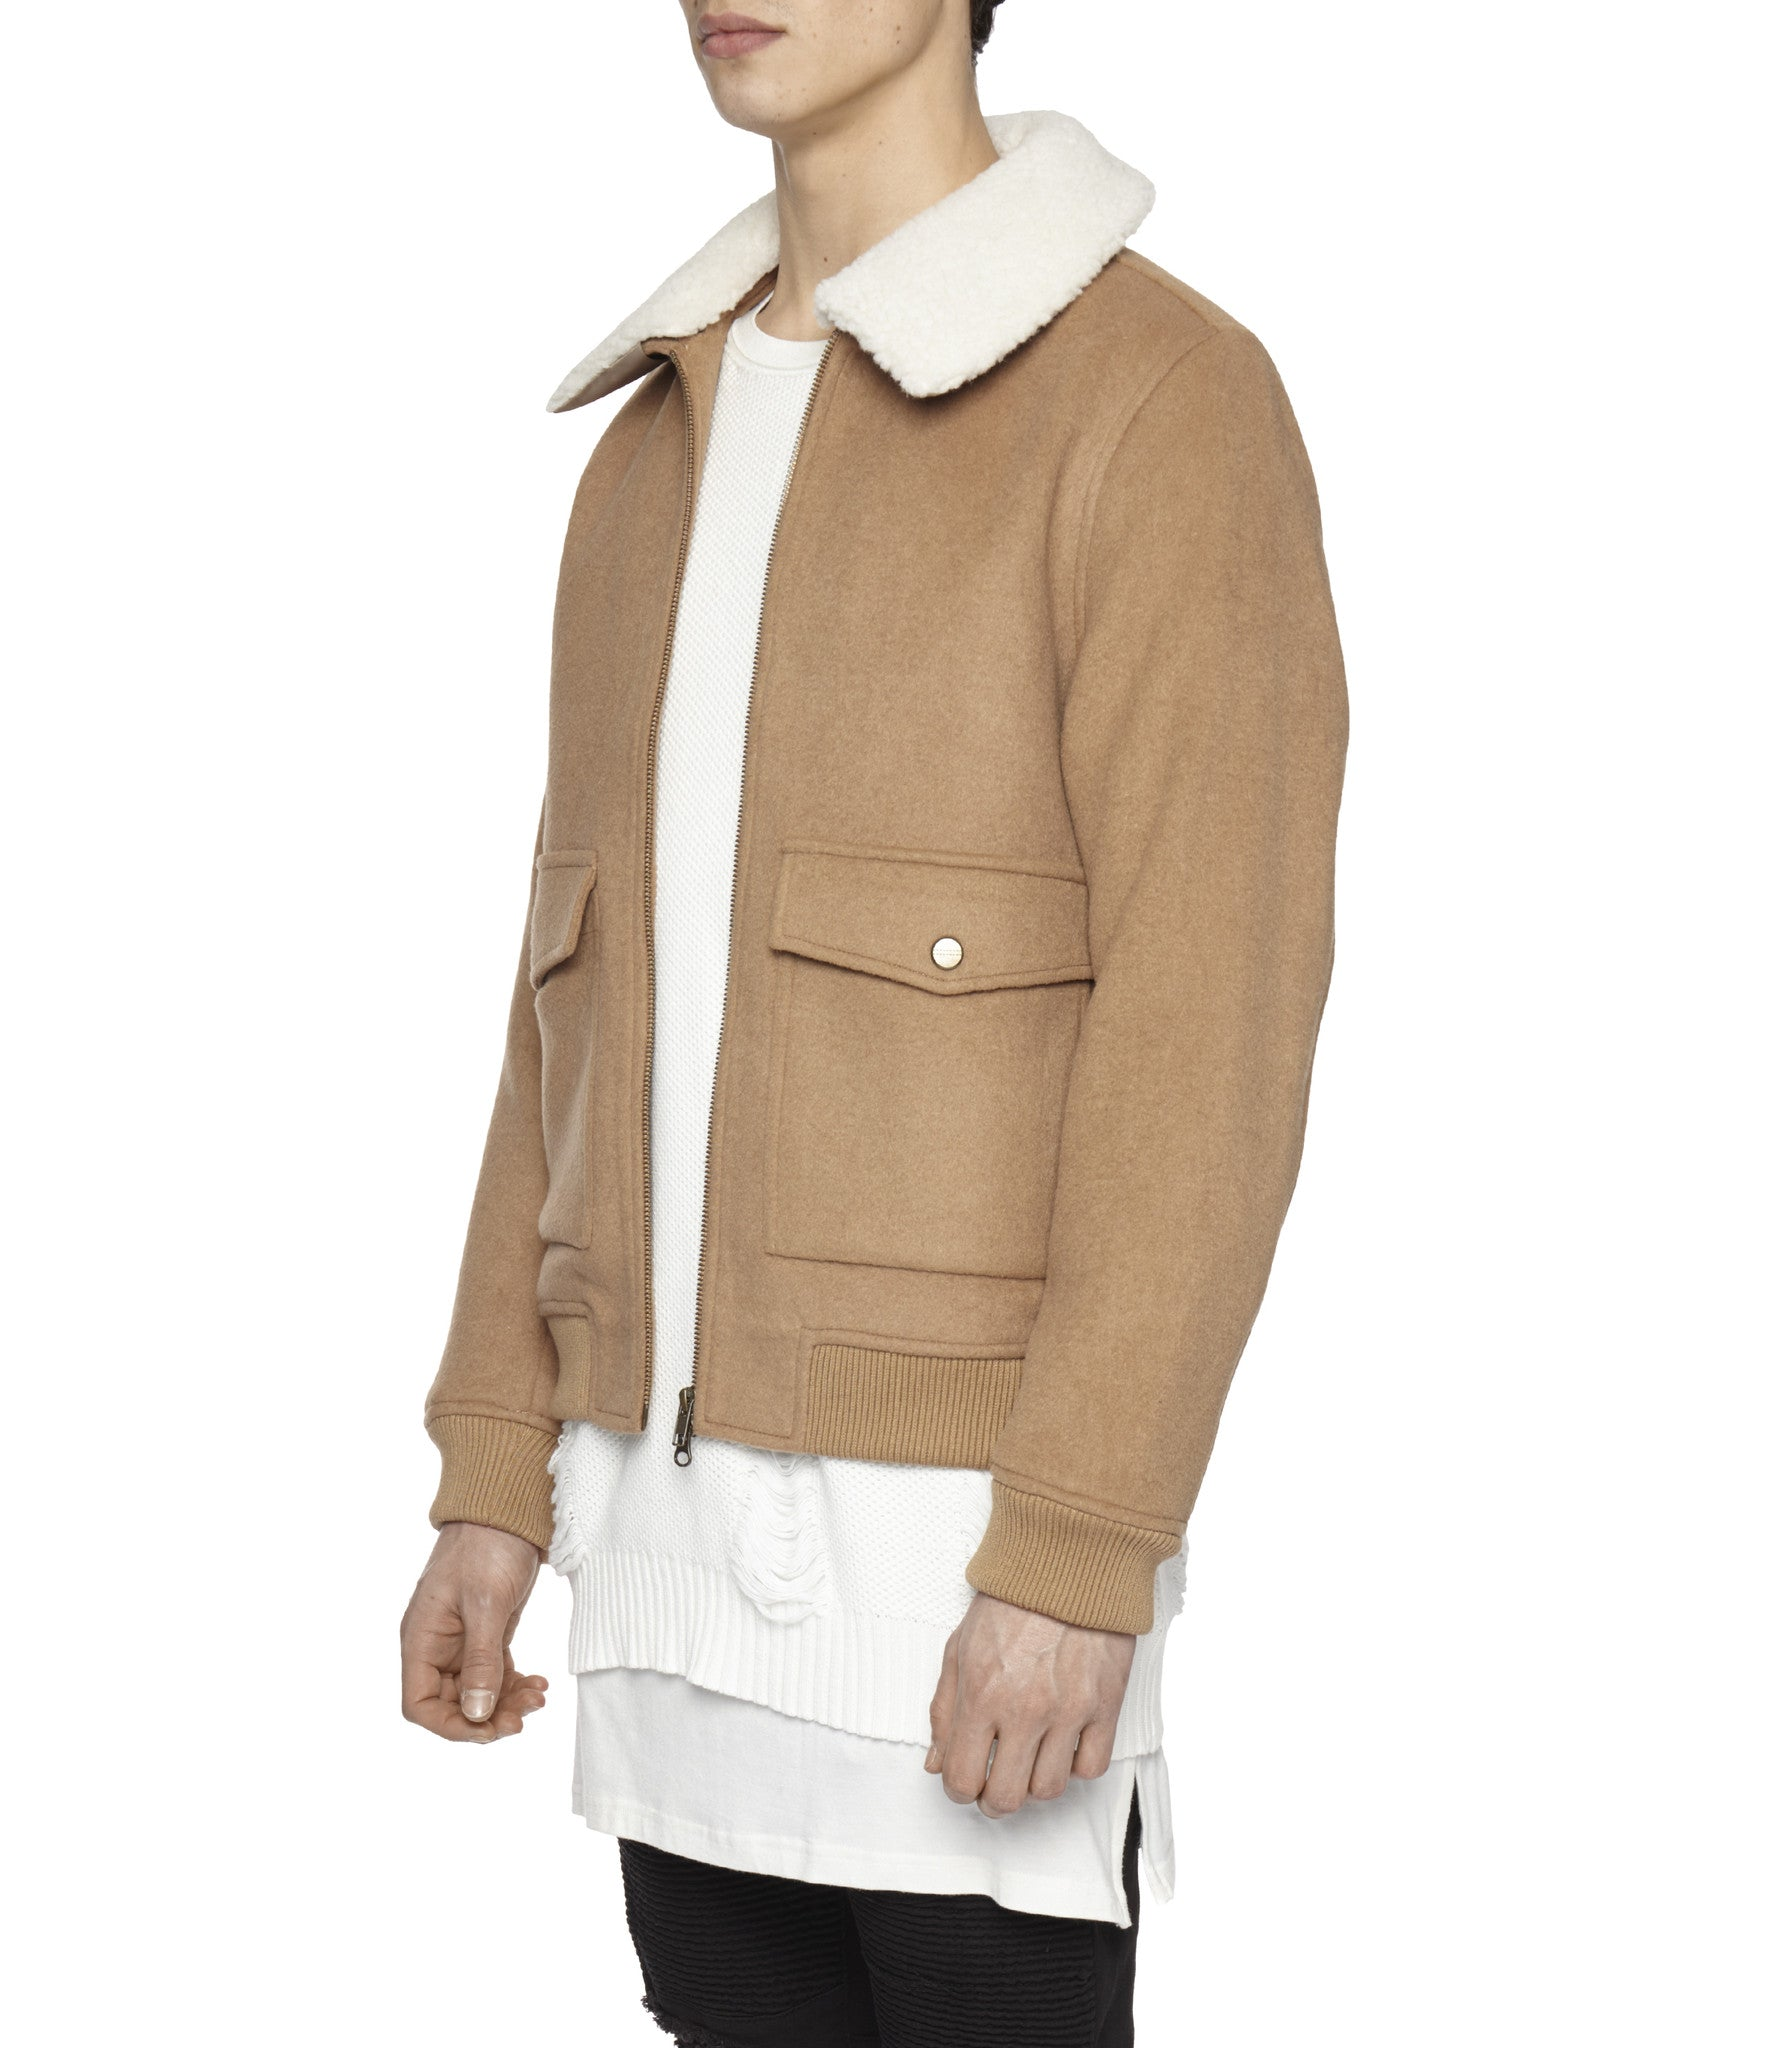 BM20 Shearling-Trimmed Wool Jacket - Camel - underated london - underatedco - 5